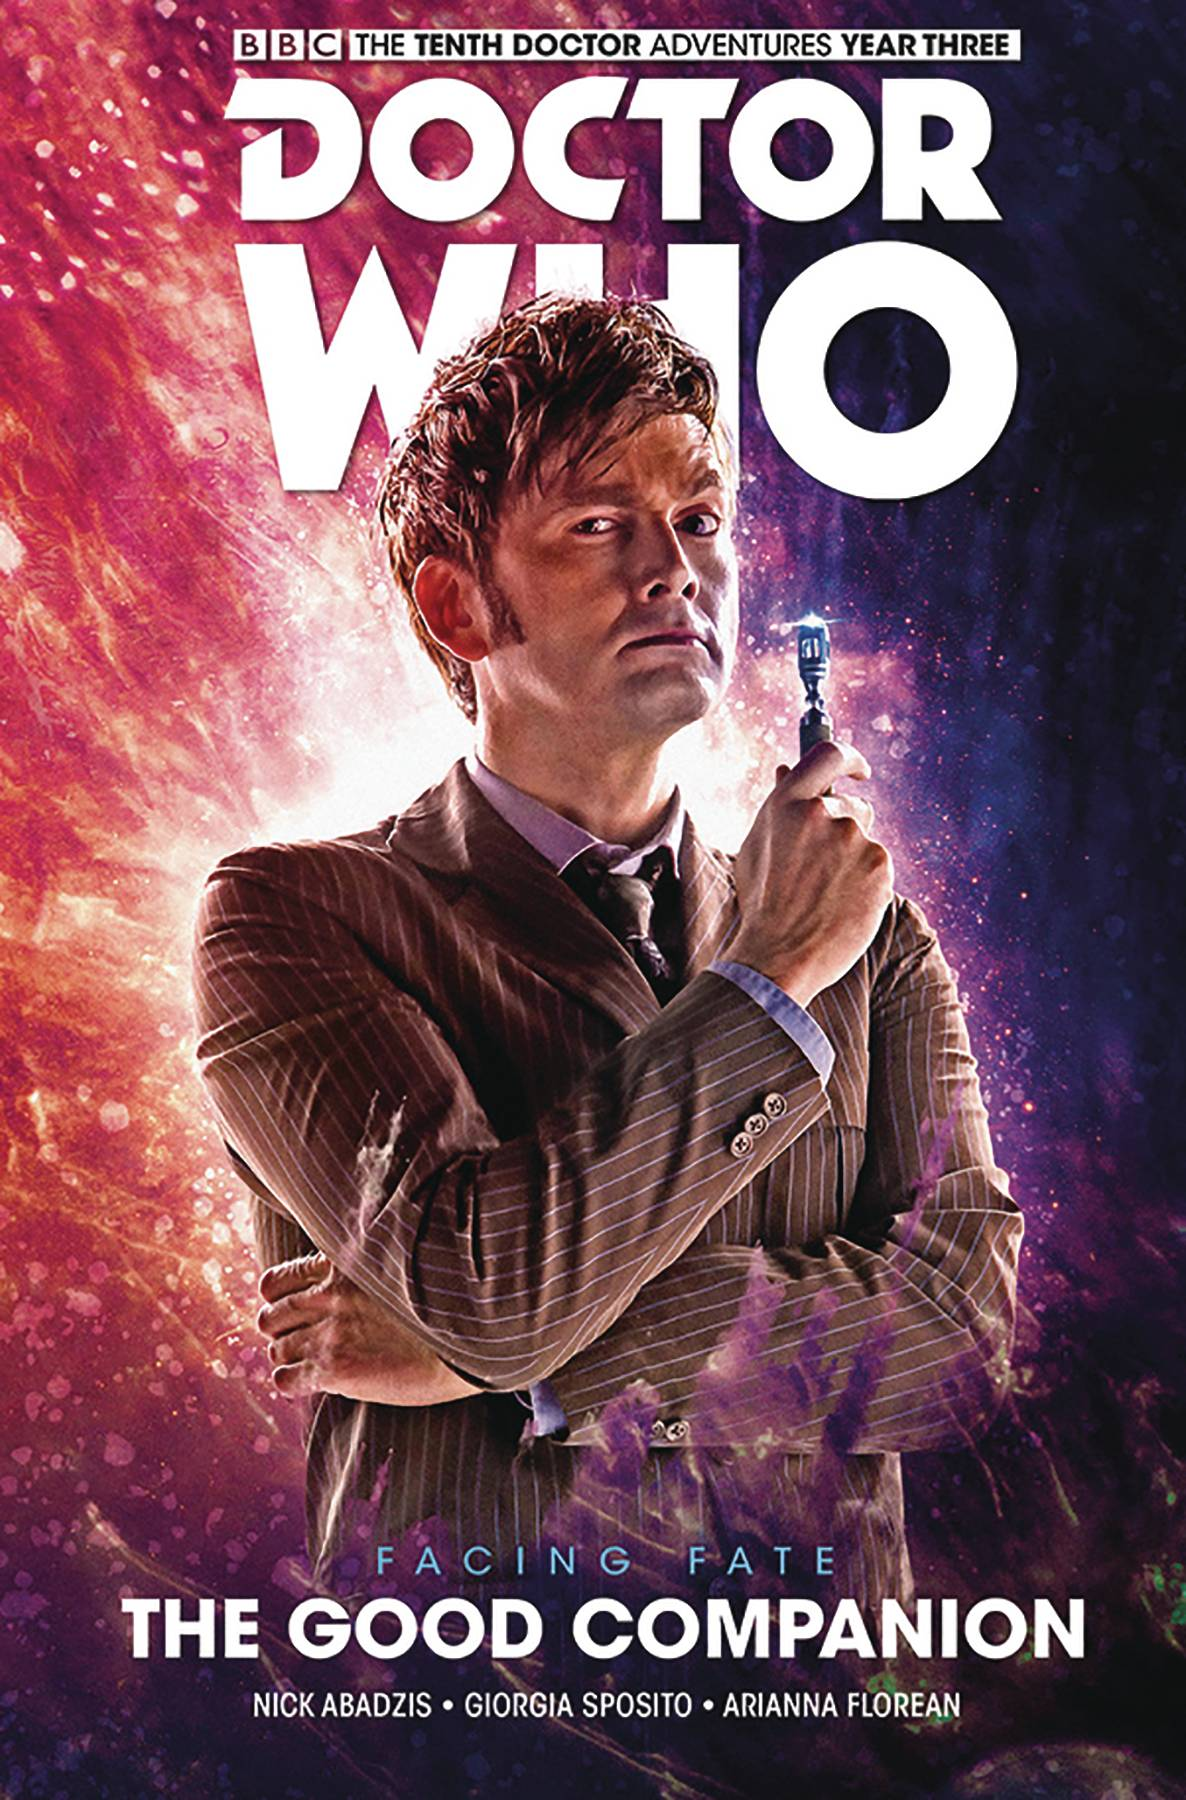 Doctor Who Tenth Doctor Facing Fate Hardcover